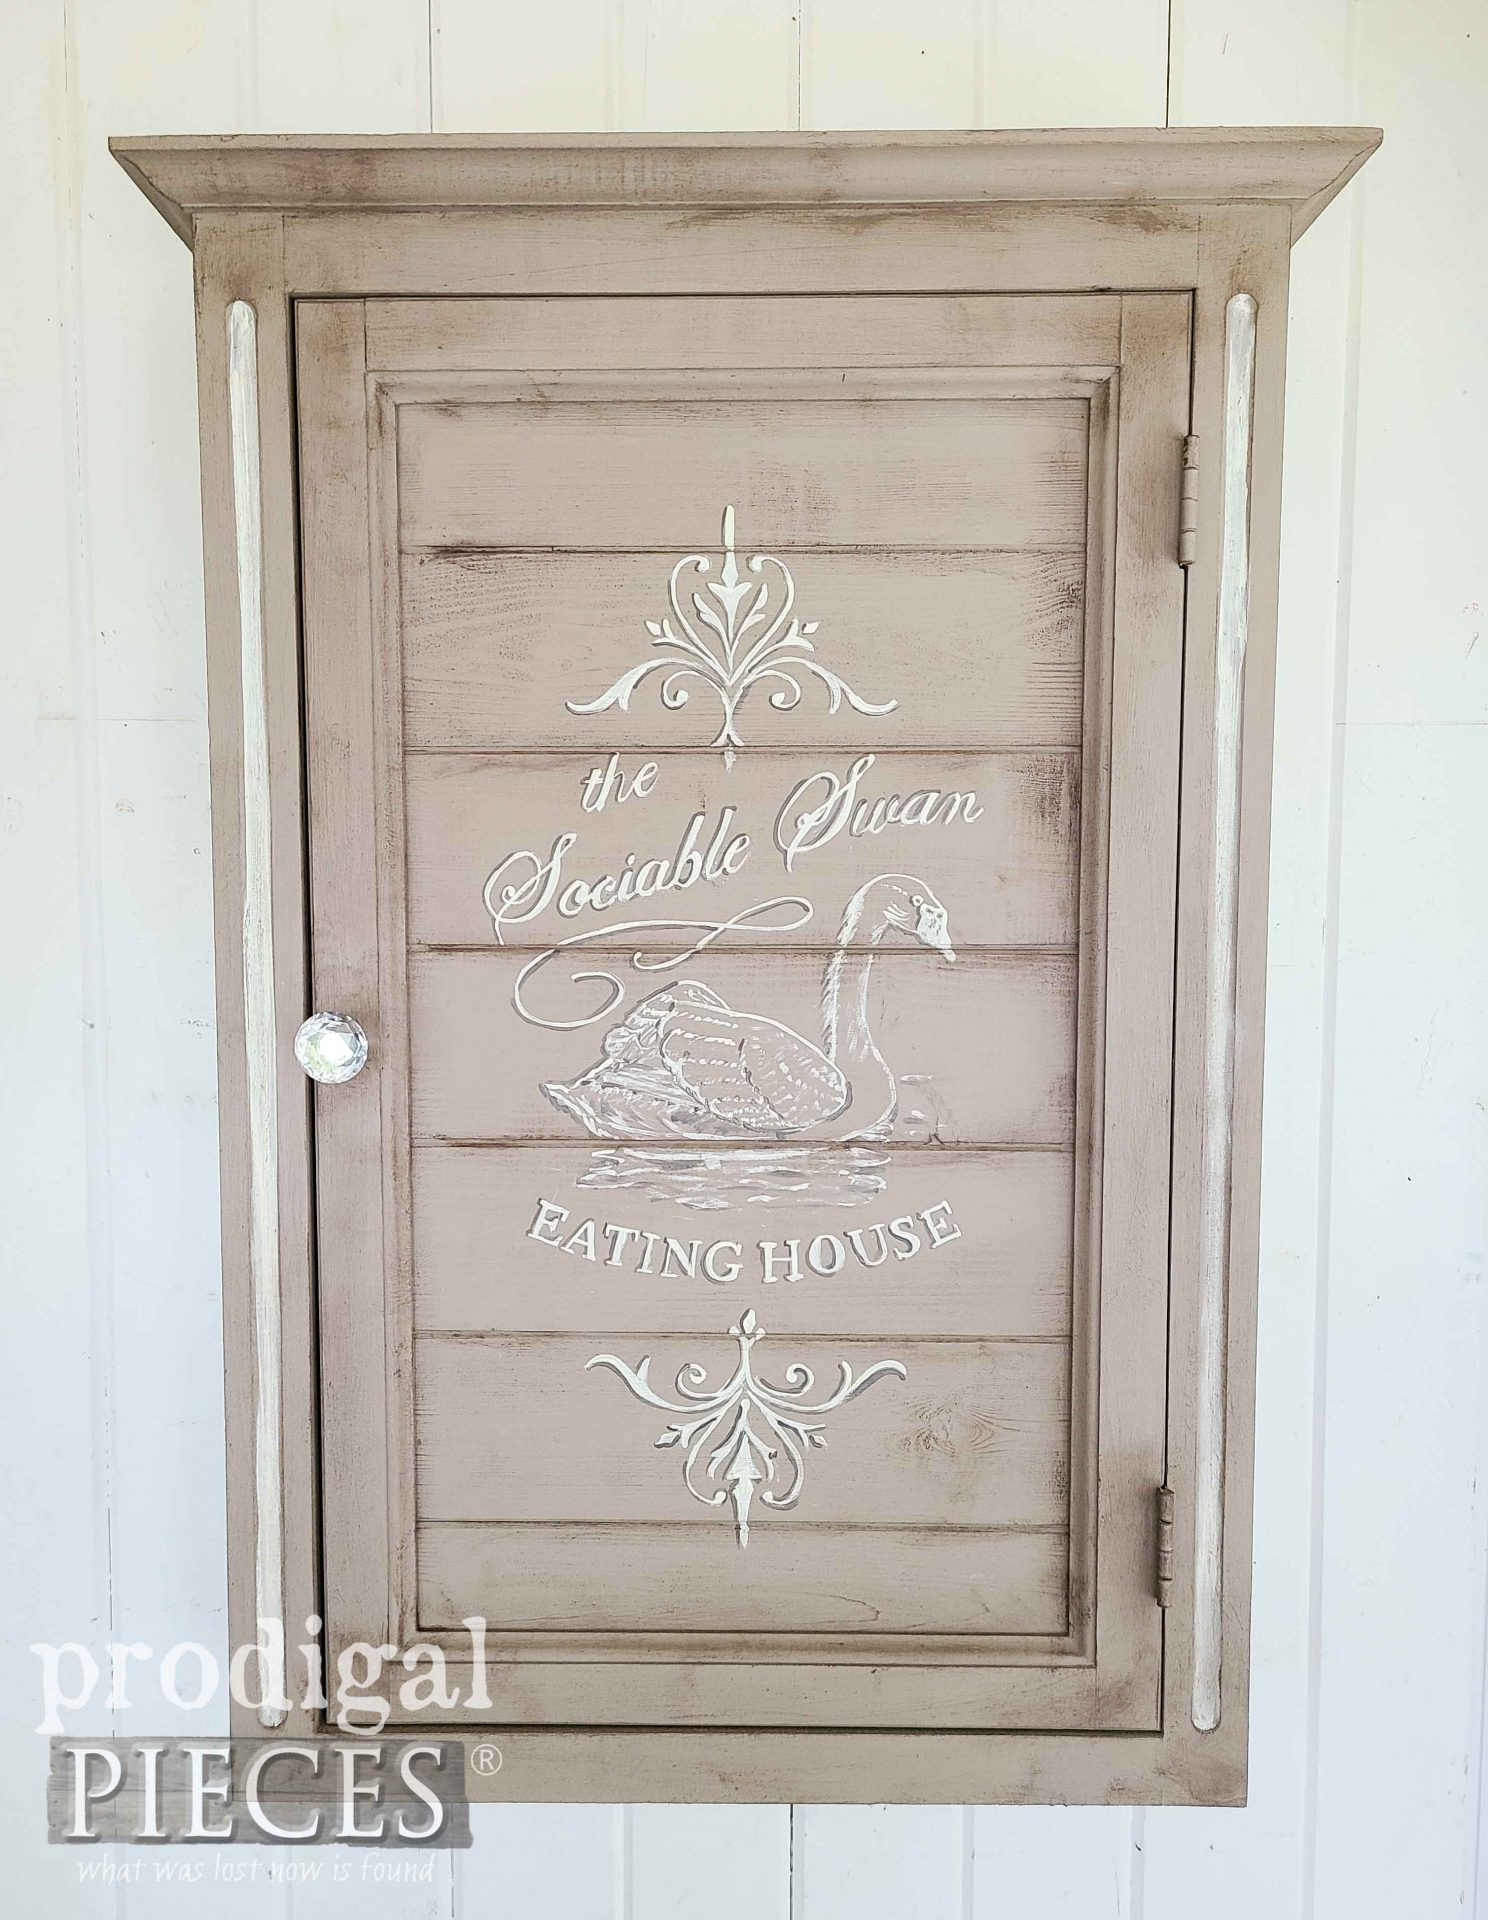 Vintage Style French Farmhouse Wall Cabinet from Mirrored Medicine Cabinet by Larissa of Prodigal Pieces | prodigalpieces.com #prodigalpieces #storage #home #farmhouse